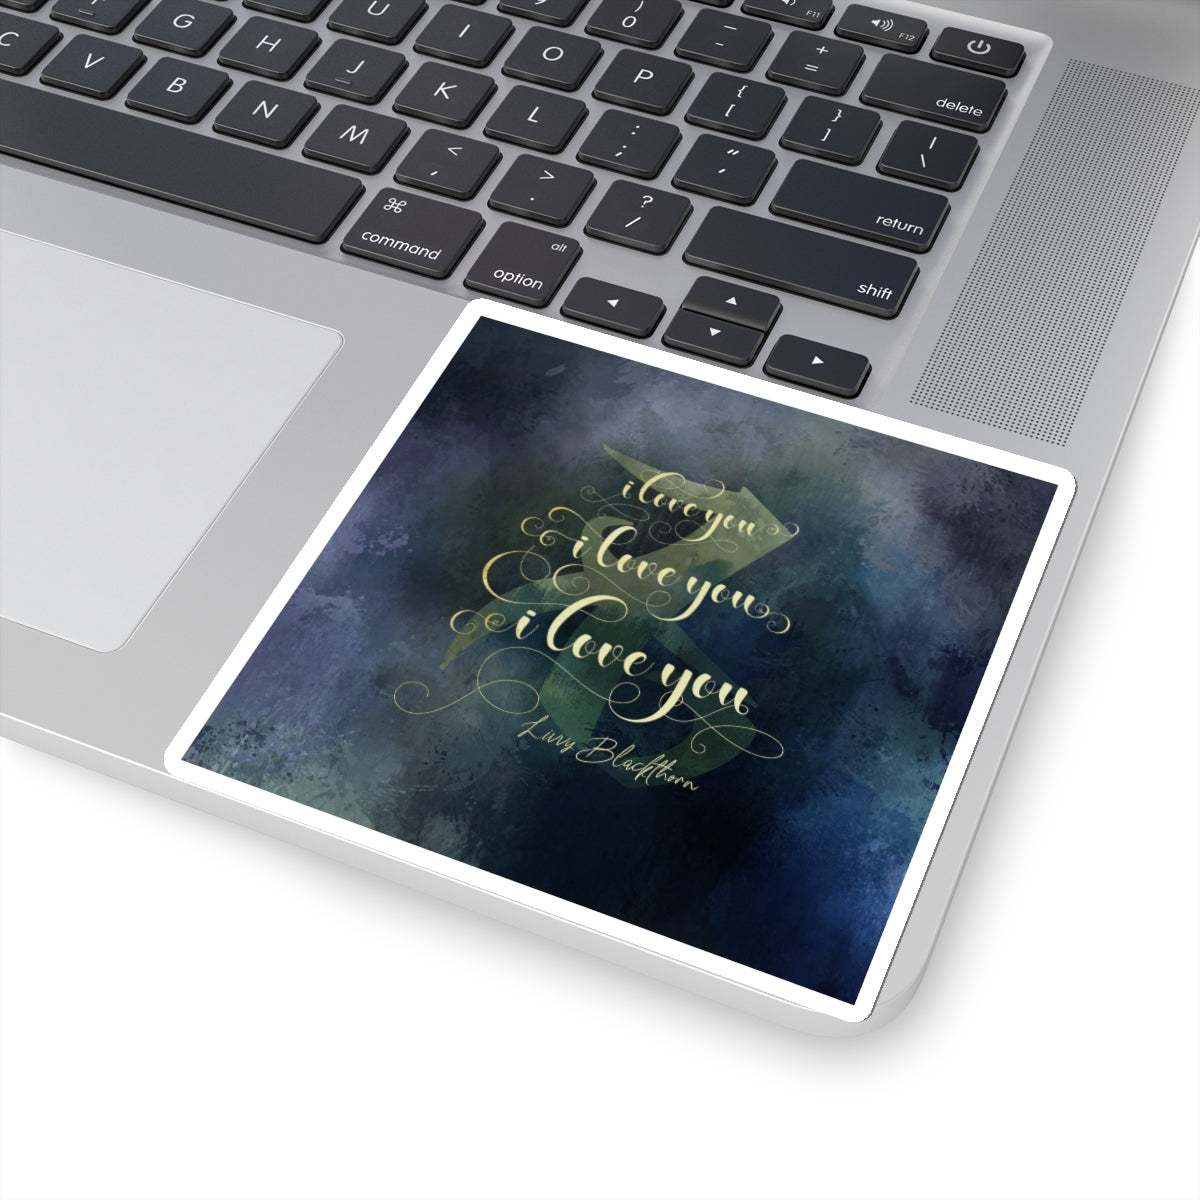 I love you... Livvy Blackthorn Quote Sticker - LitLifeCo.